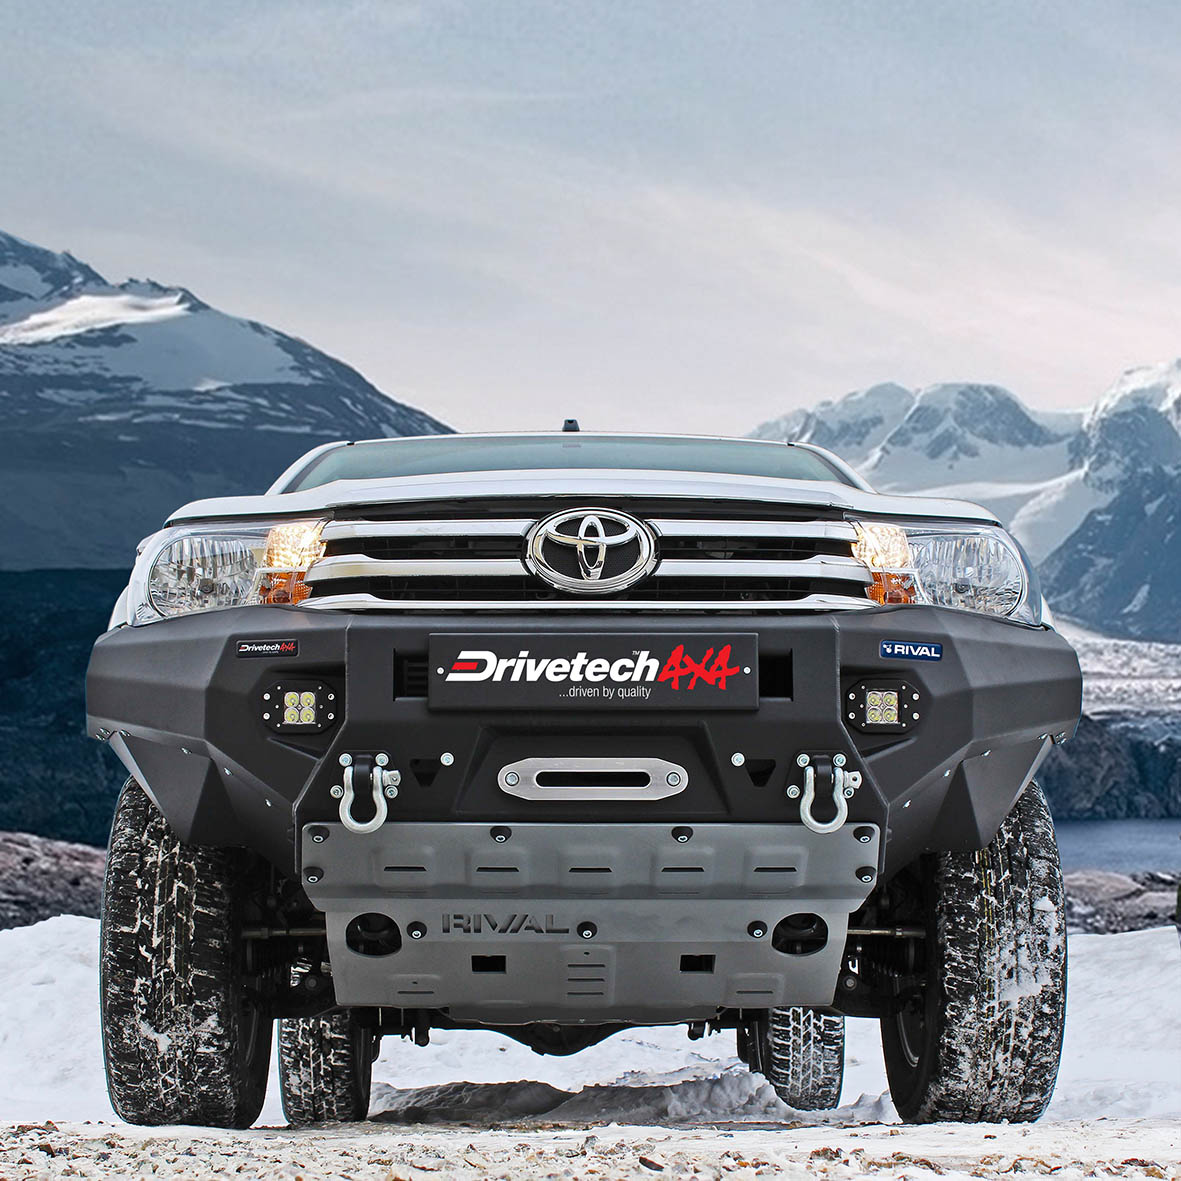 First look: Drivetech 4×4 Rival bumper